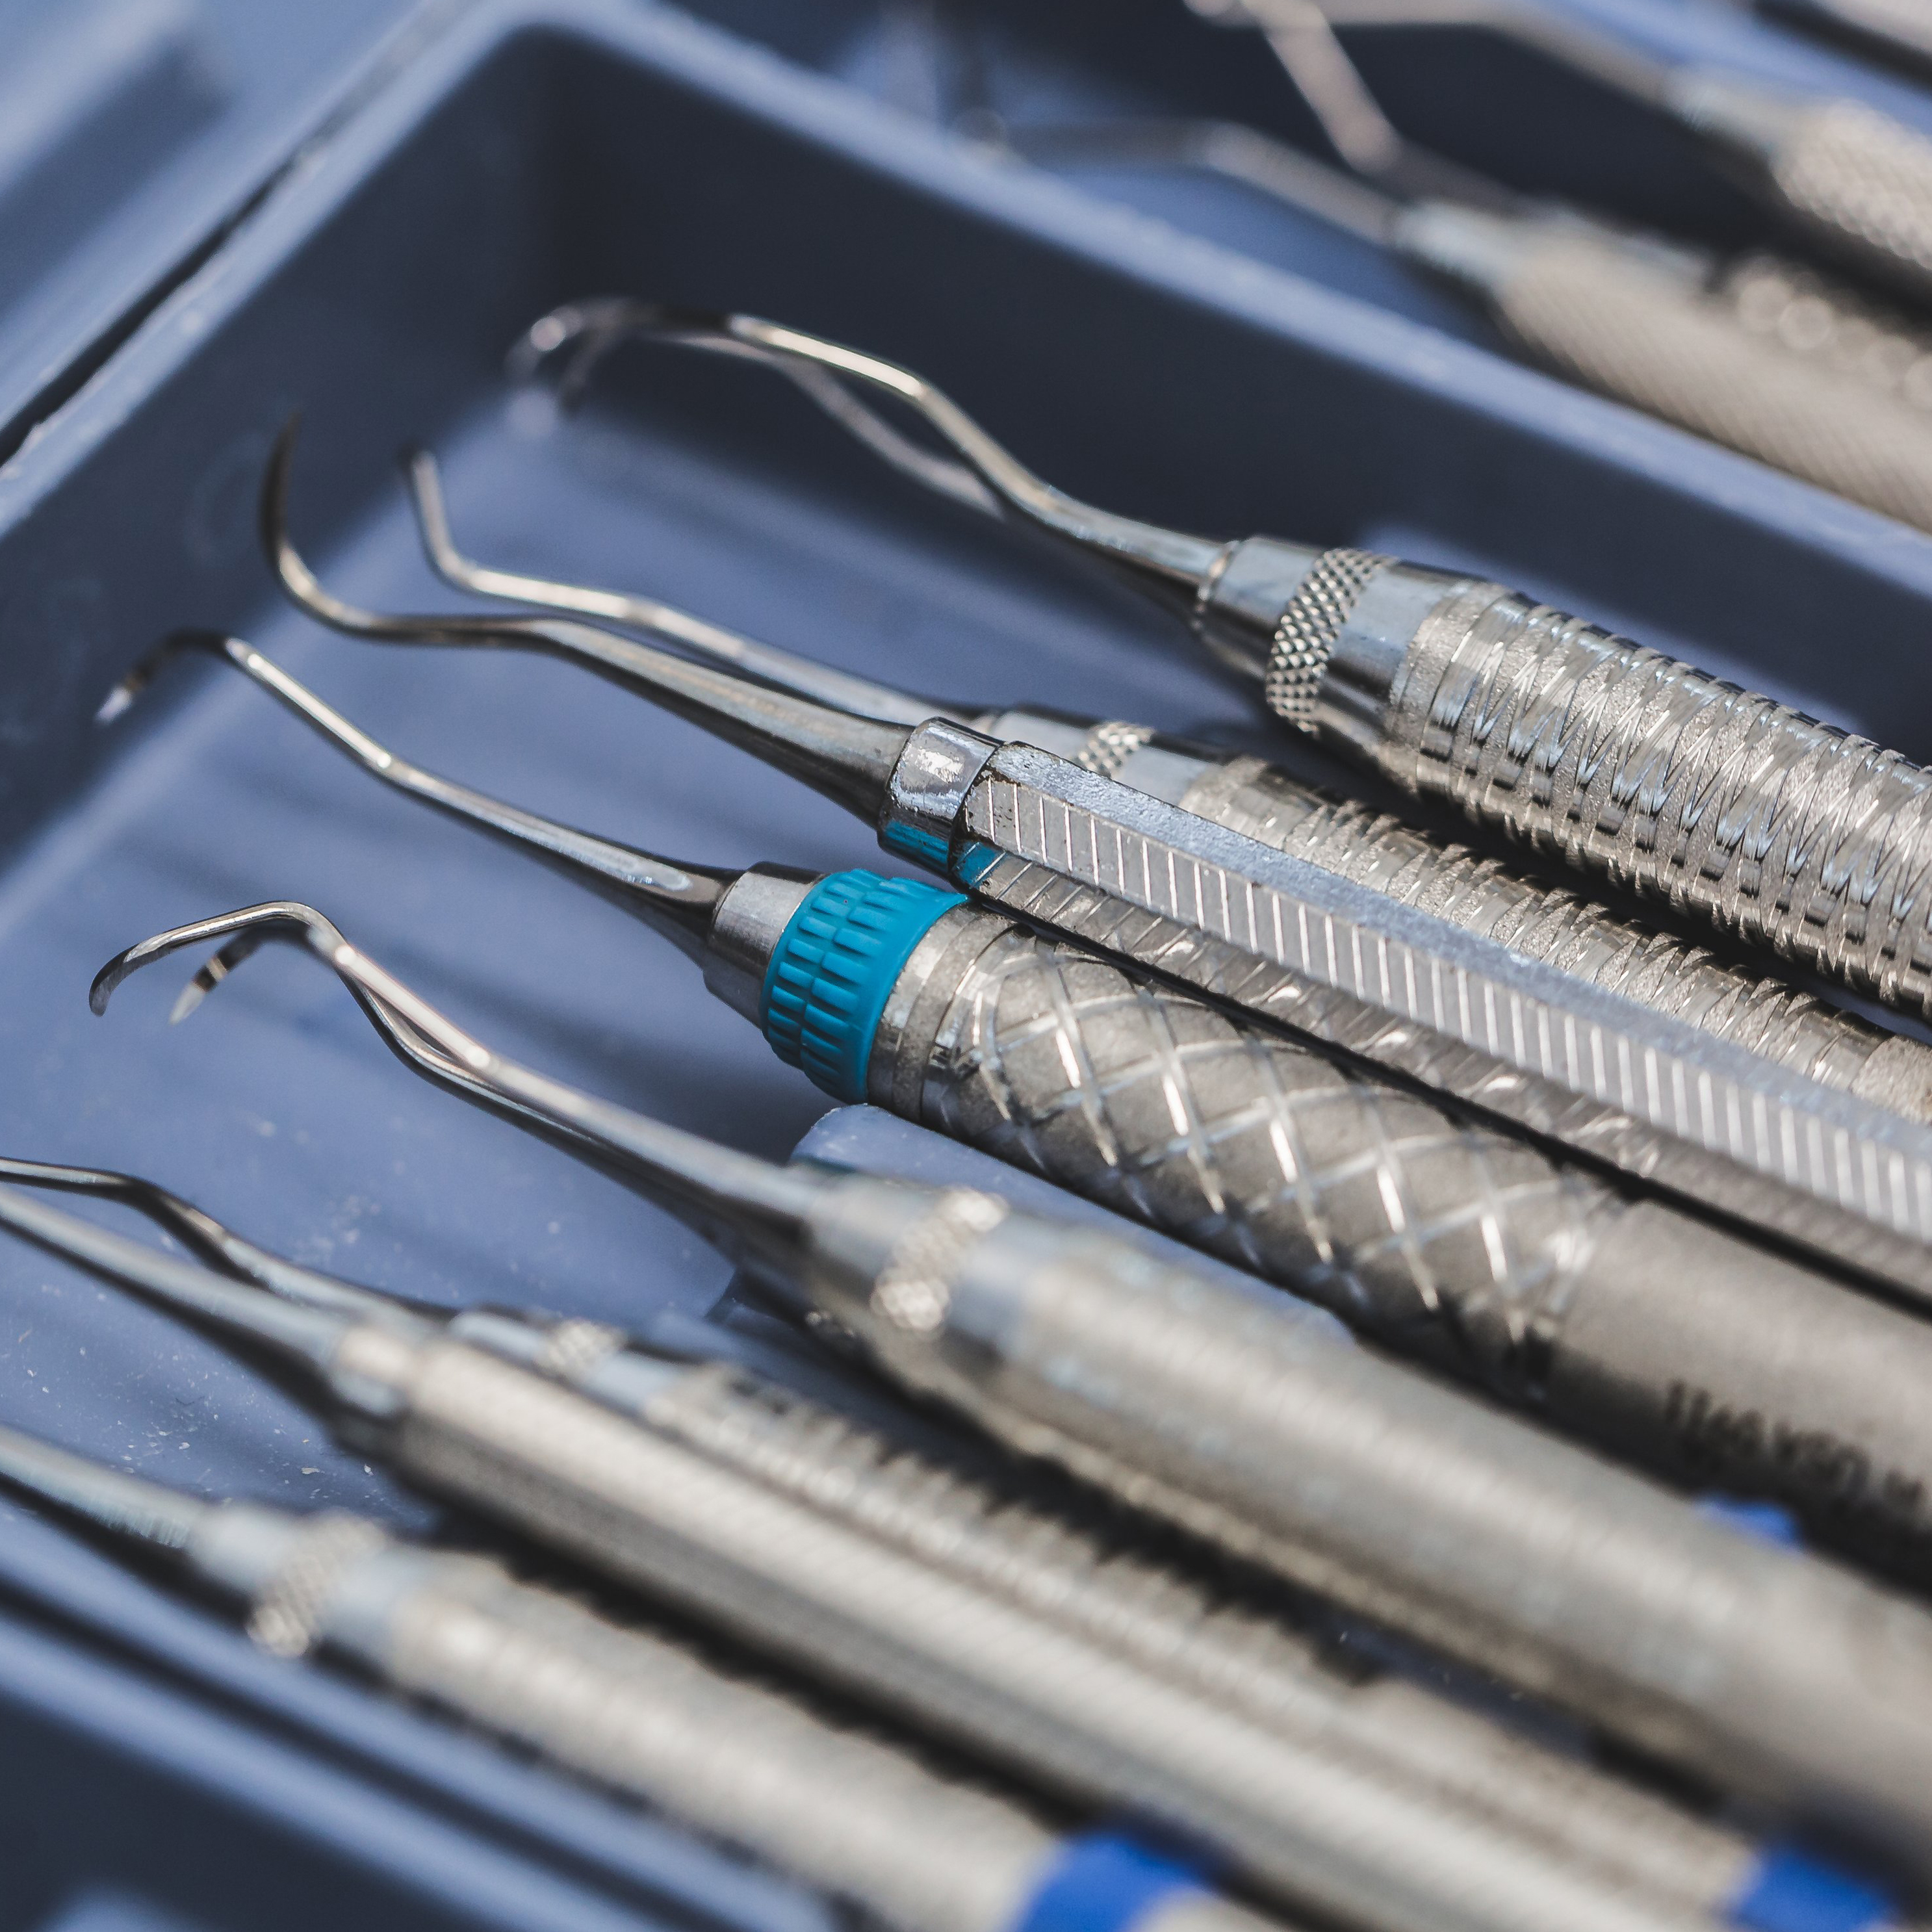 Periodontal probes on a blue tray